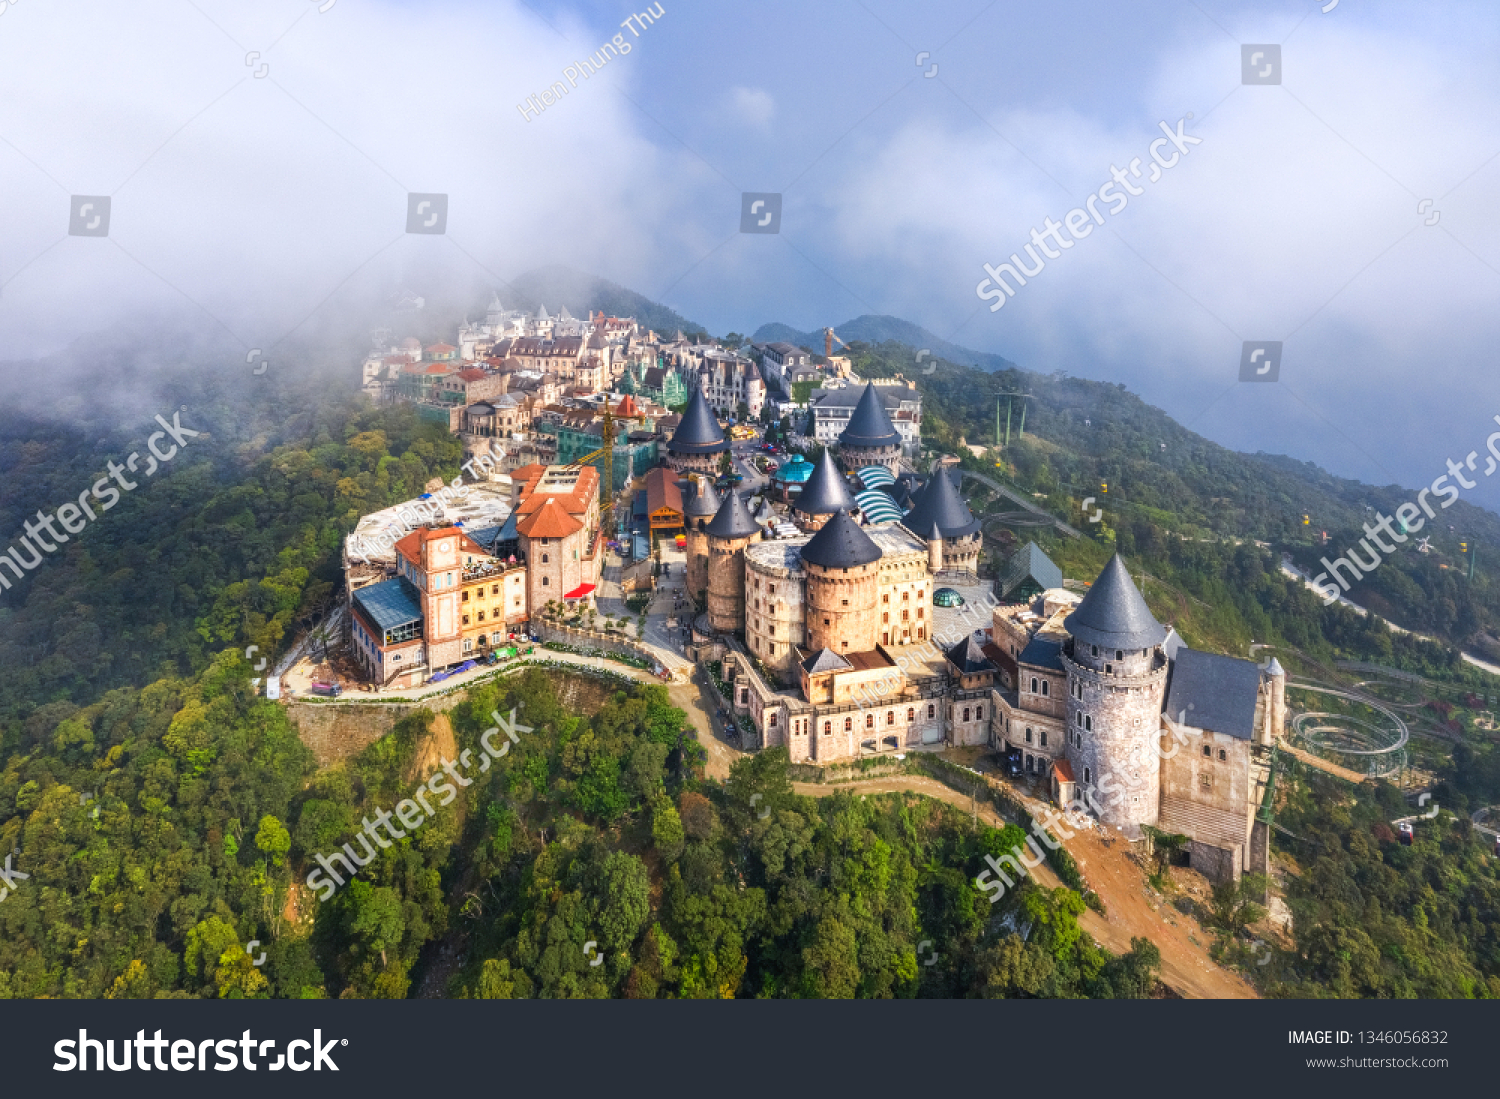 Aerial view of landscape is castles covered with fog at the top of Bana Hills, the famous tourist destination of Da Nang, Vietnam. Near Golden bridge. #1346056832